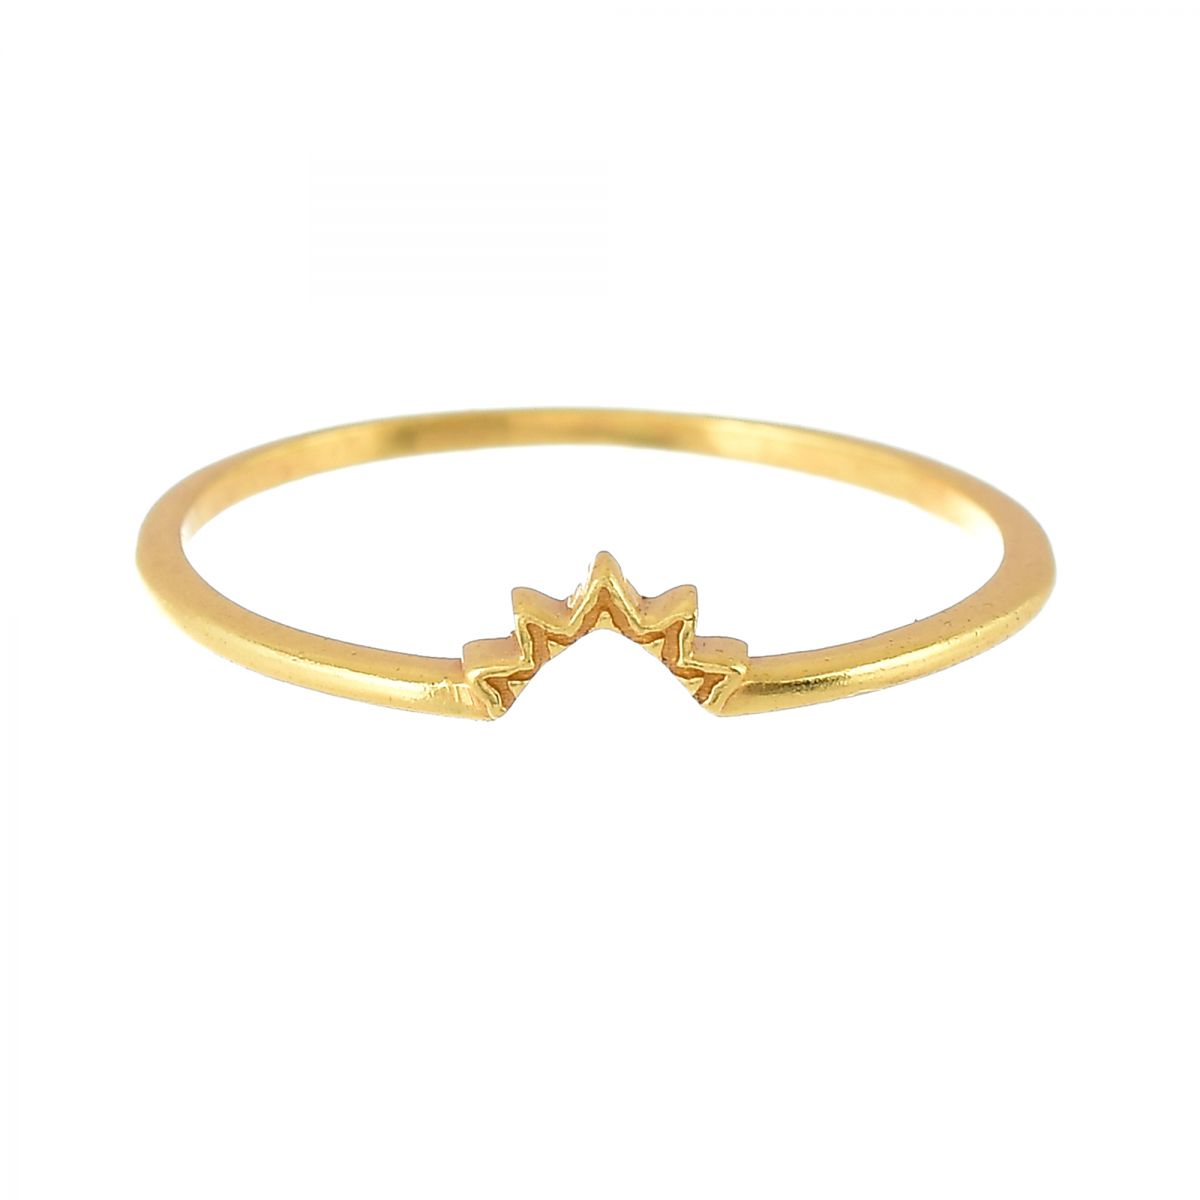 h ring size 56 triangle nefrite set of 2 gold plated